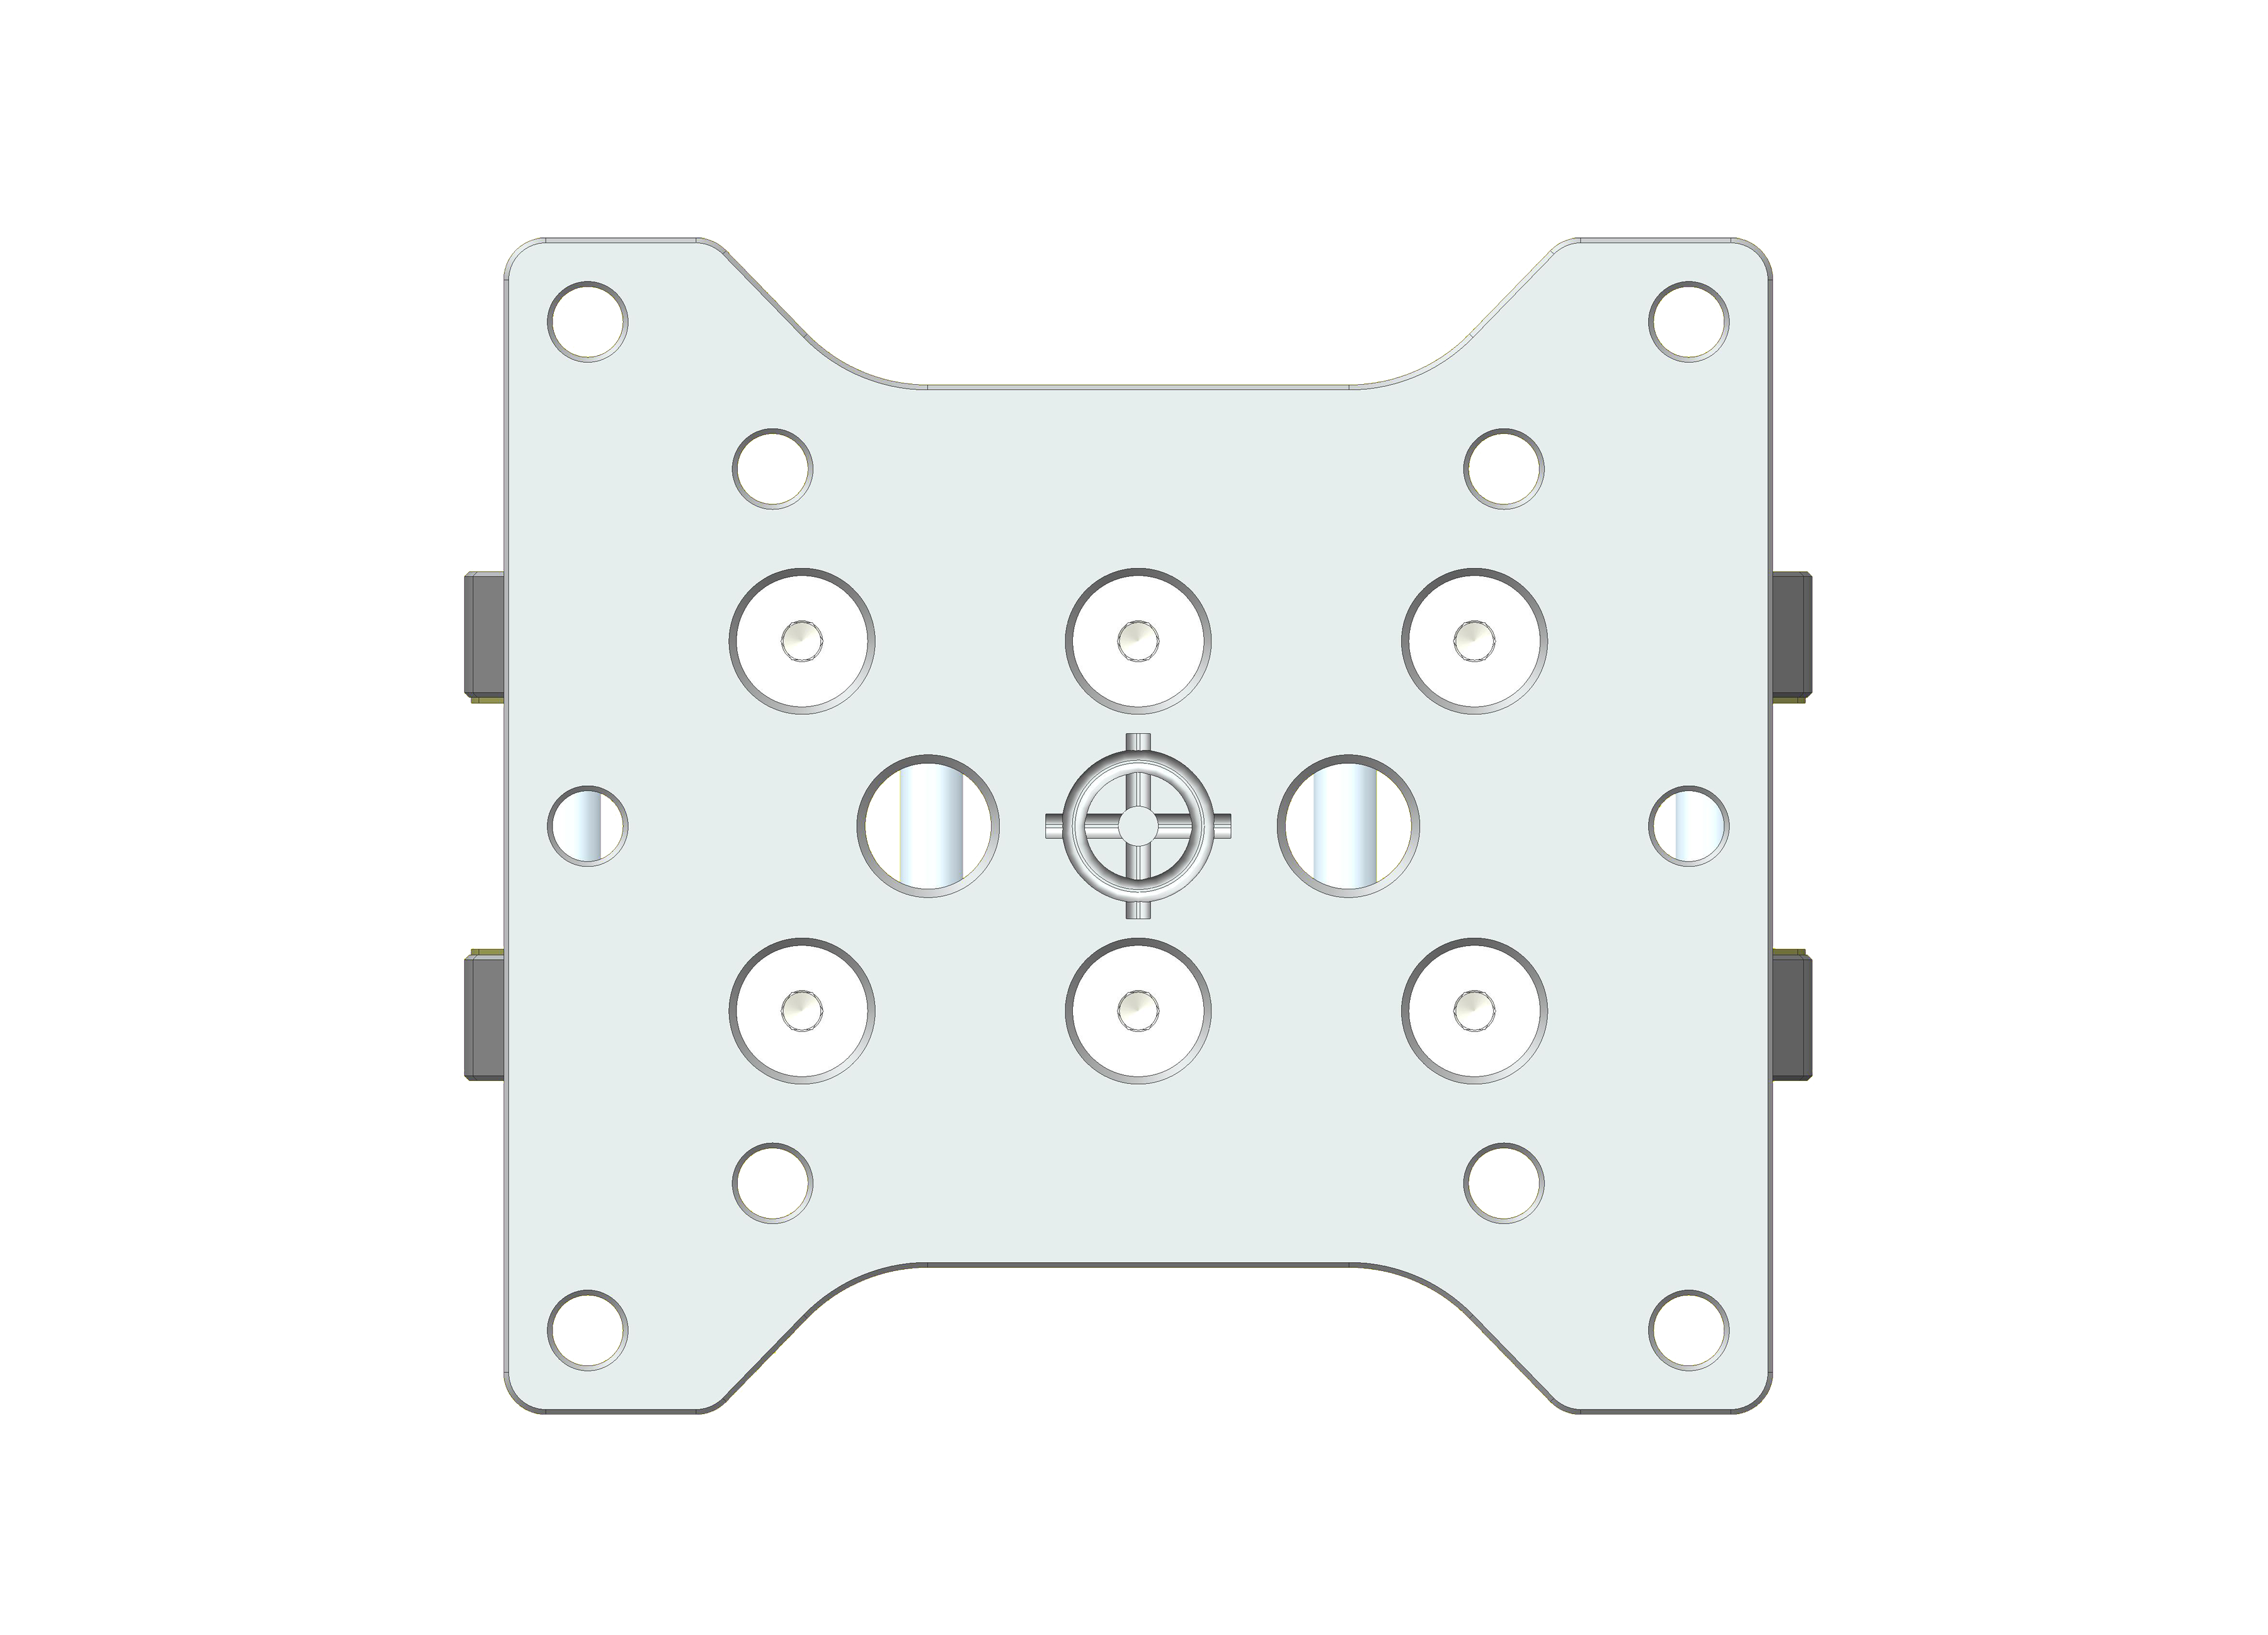 Top View shows USM RP for offset measurements